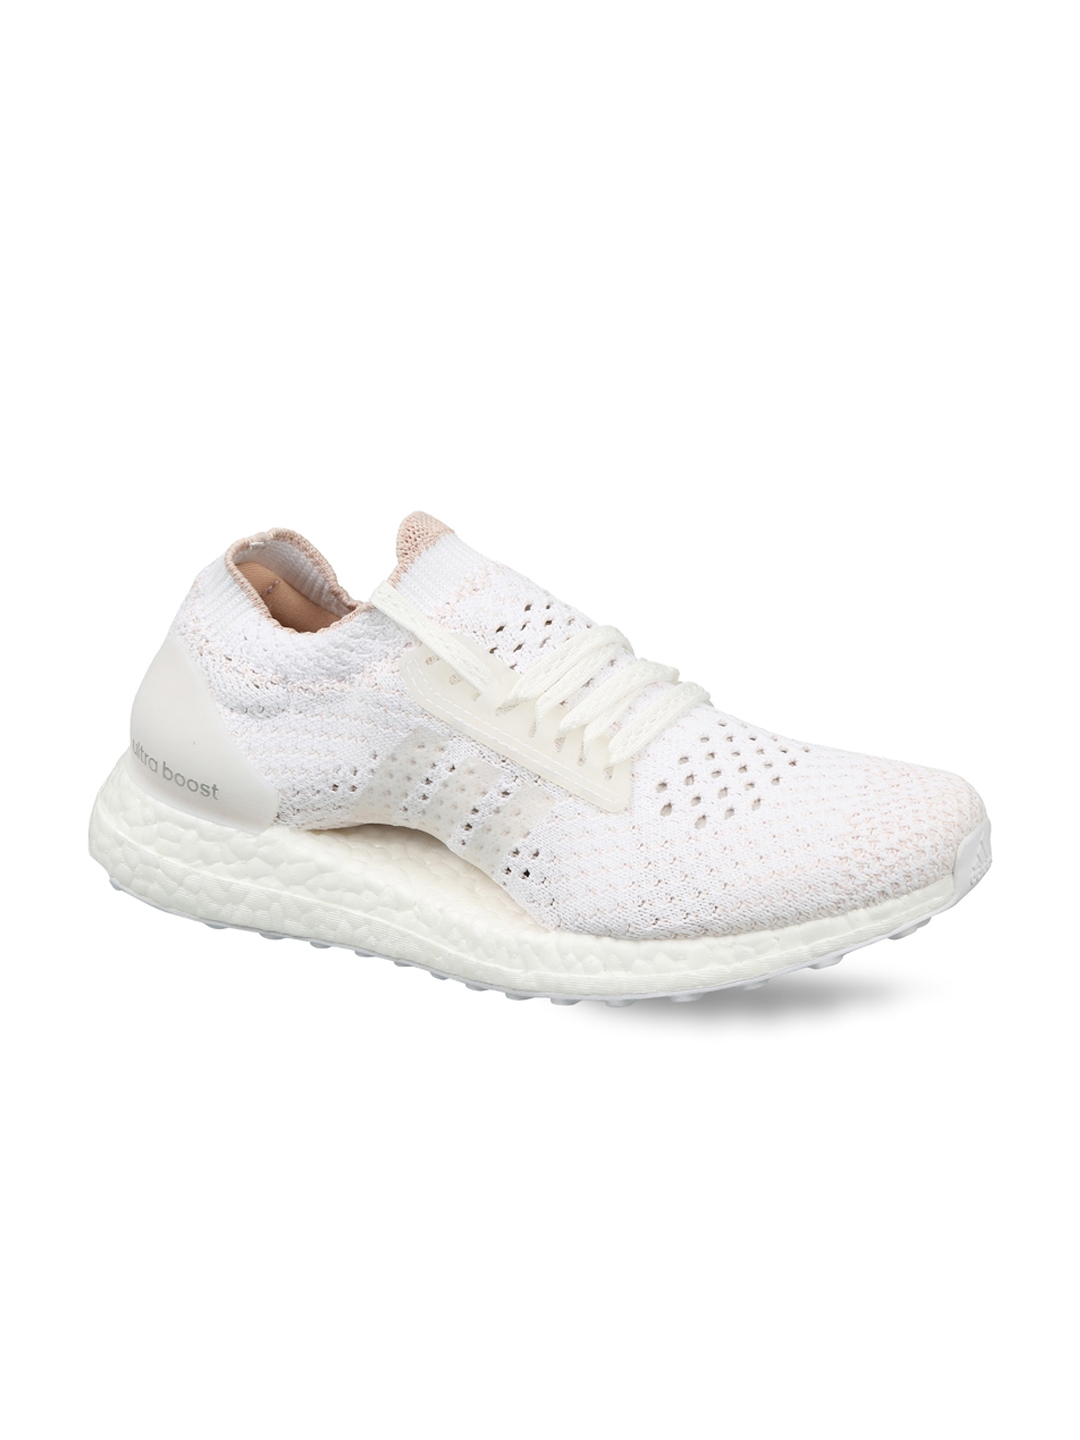 79cc1822001 Buy ADIDAS Women White ULTRABOOST X CLIMA Running Shoes - Sports ...